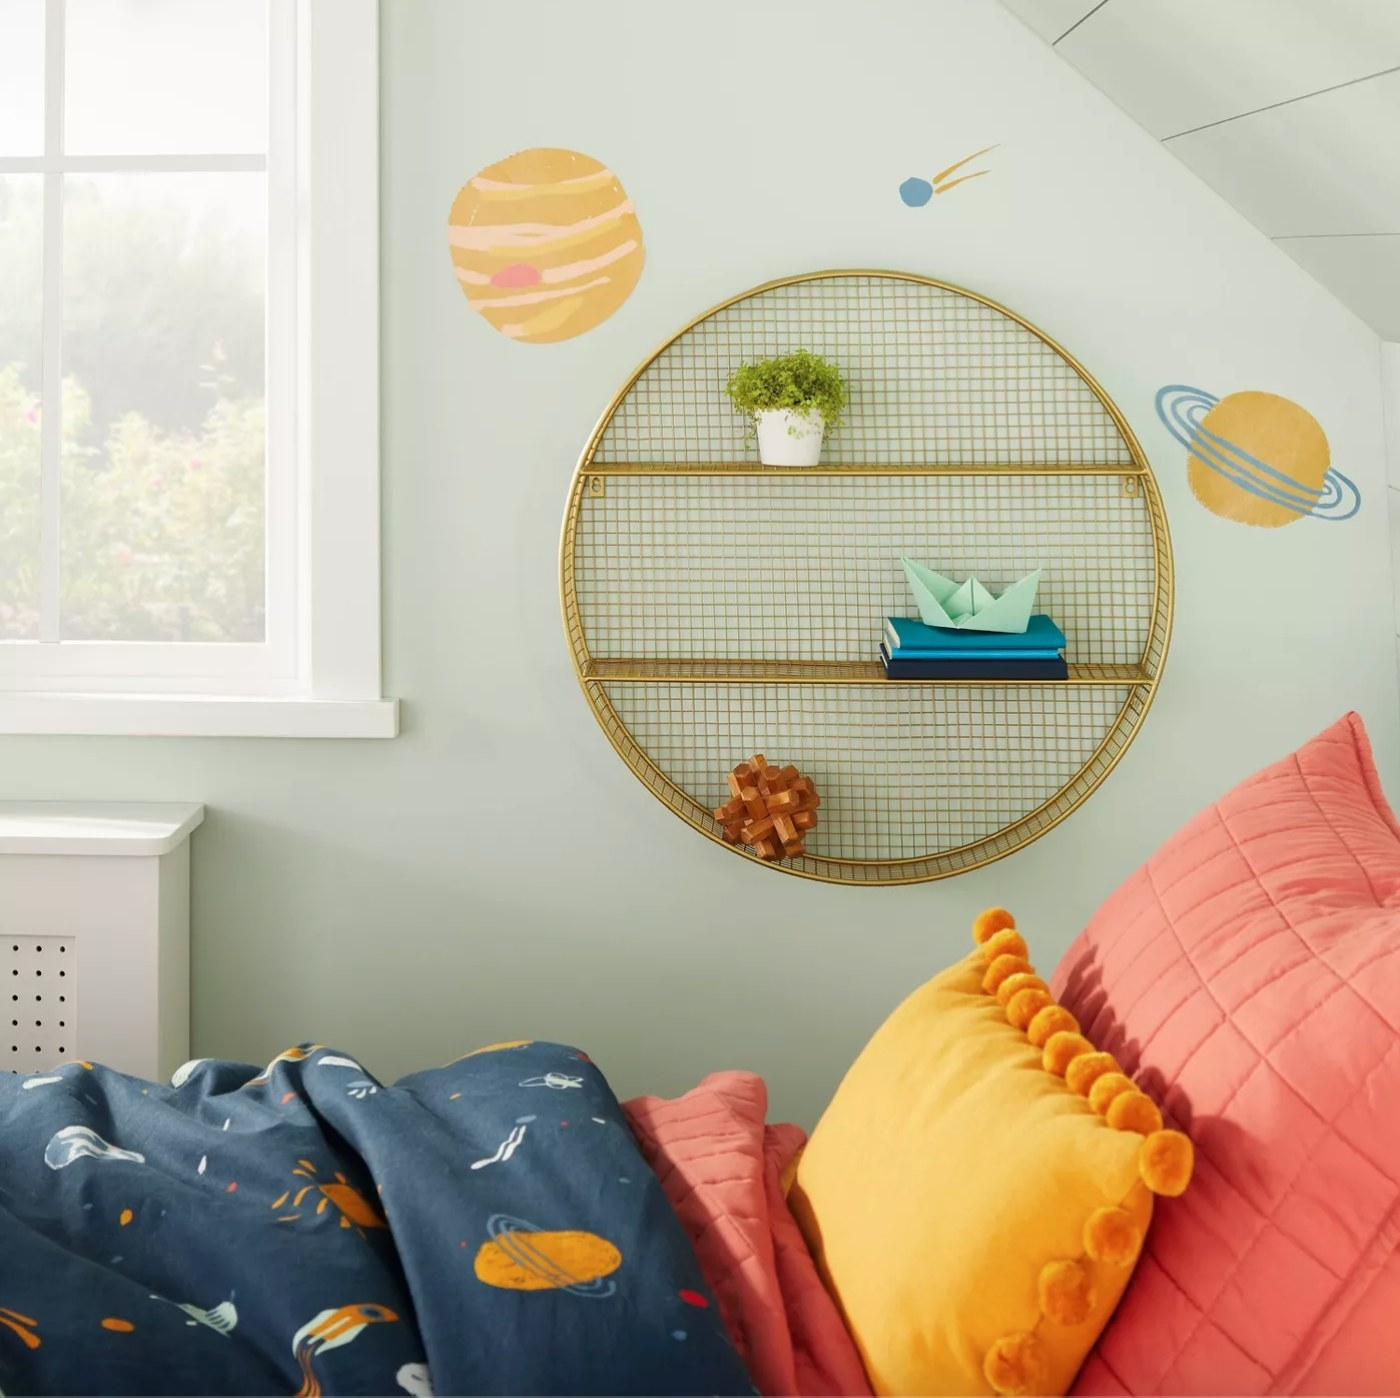 The metal circle shelf in gold holding a small plant and notebooks